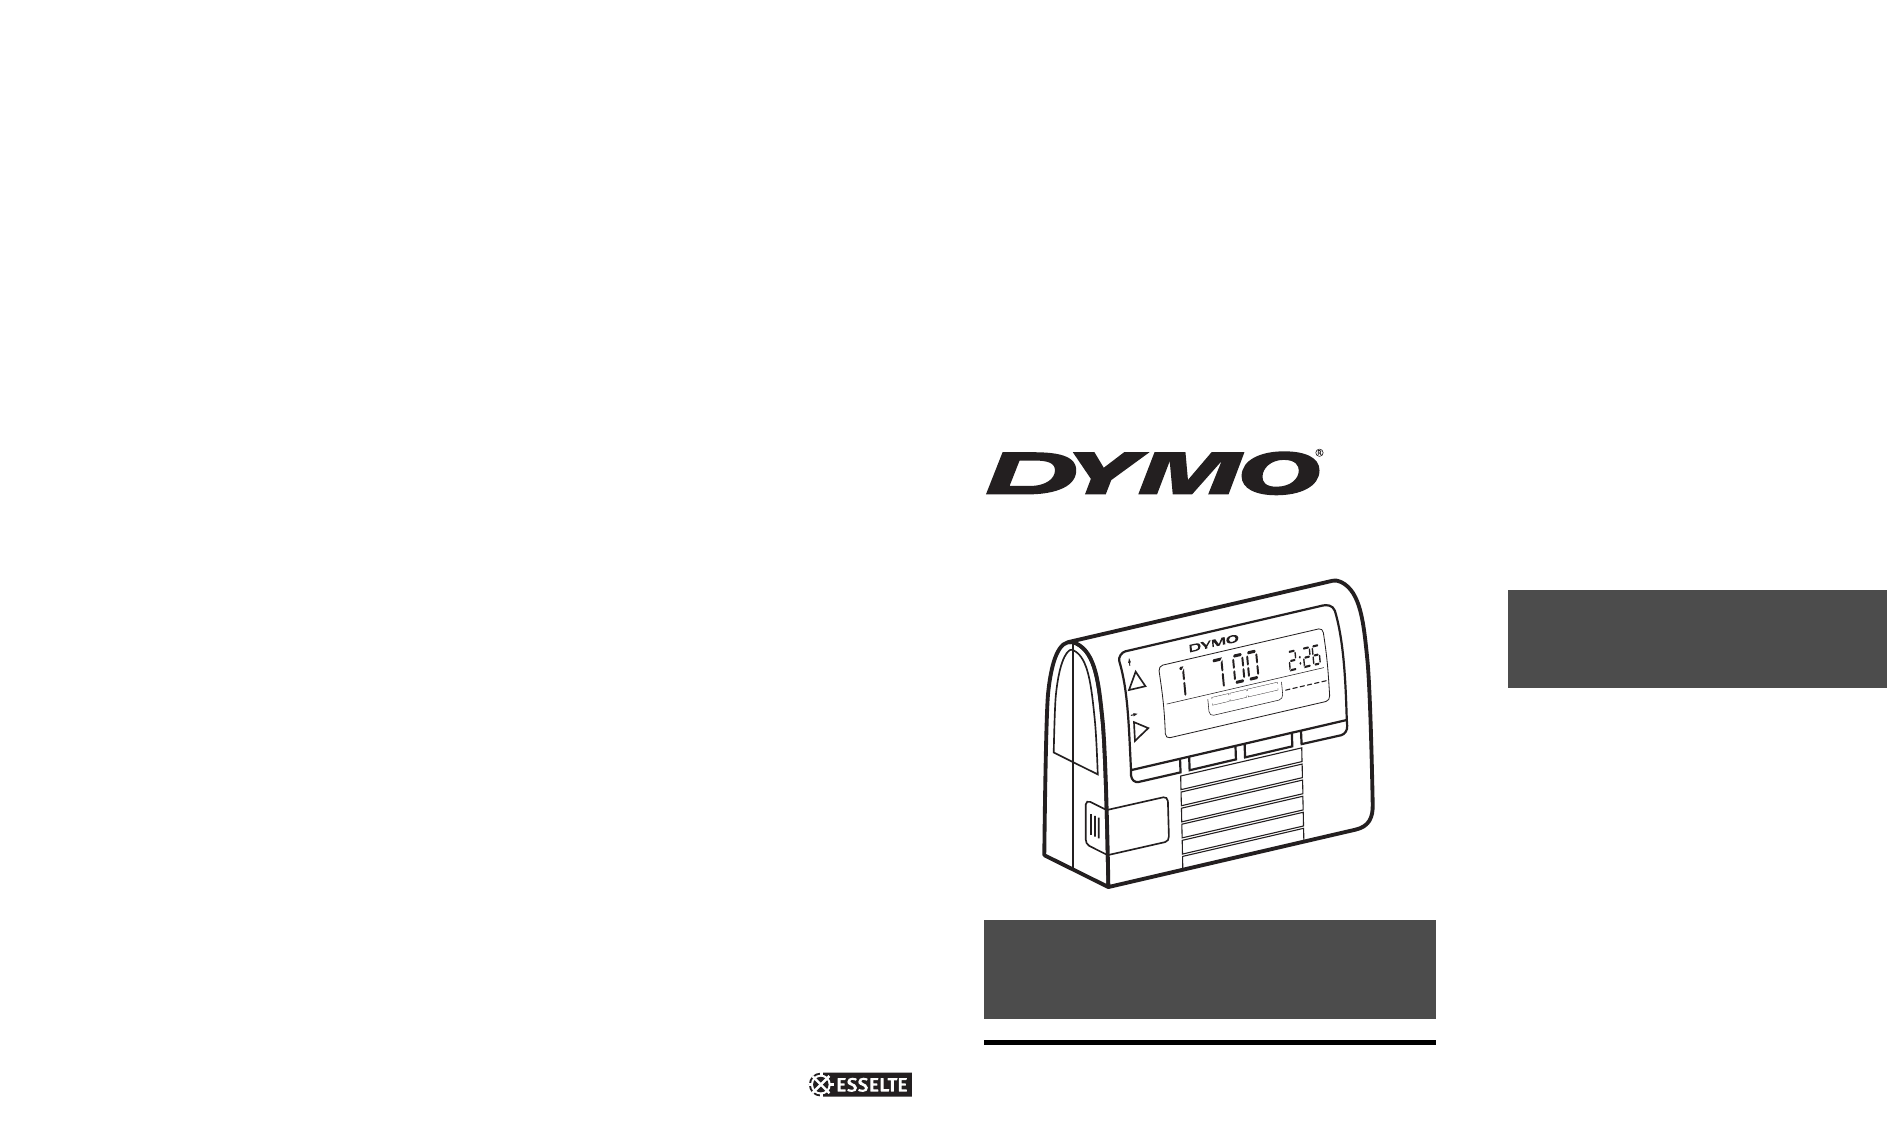 Dymo Printer Electronic Date Time Stamper User Guide